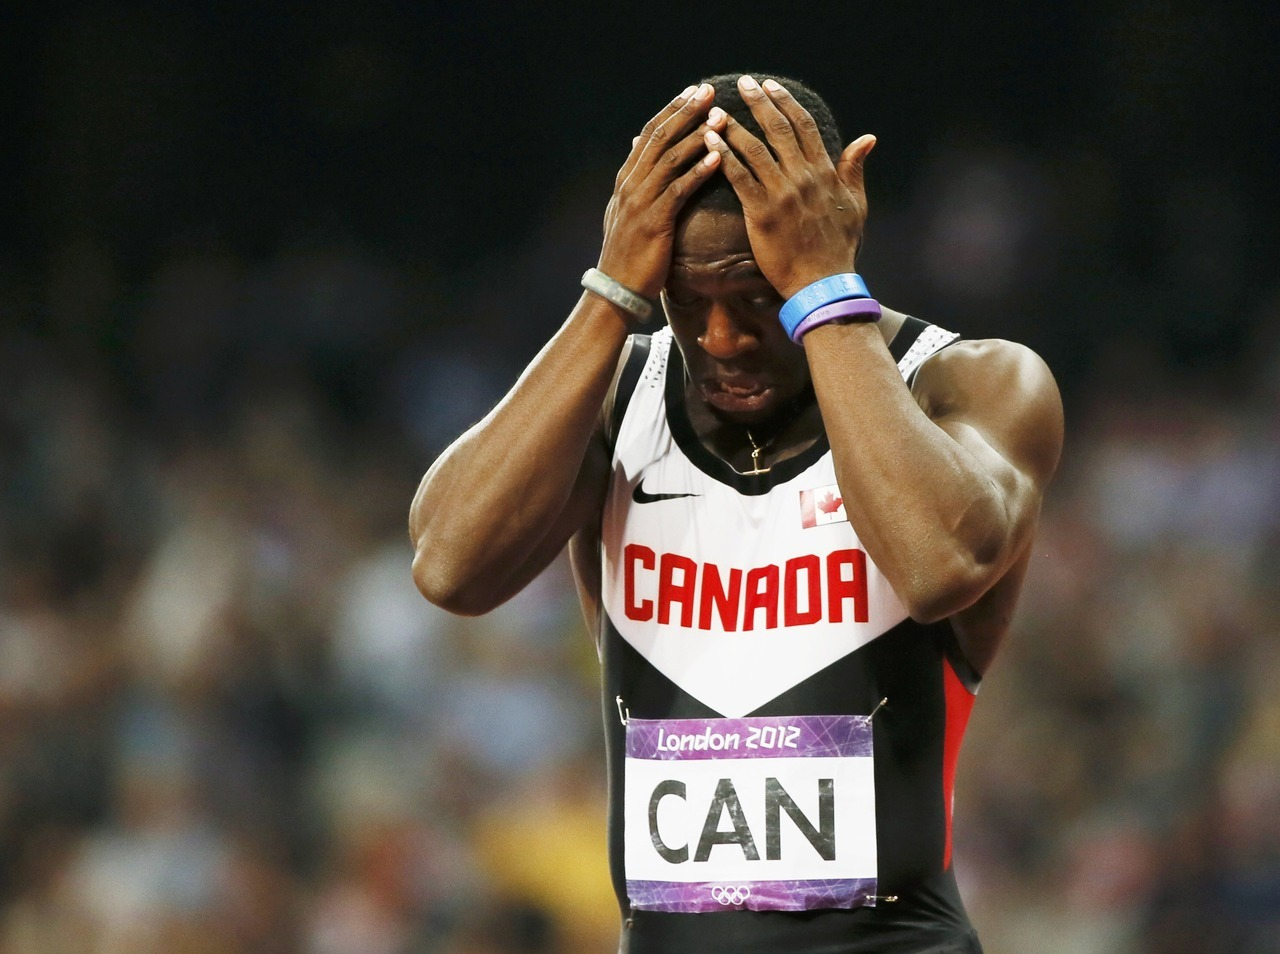 "Canada has been disqualified from the final of the men's 4×100-metre relay at the London Olympics after initially appearing to win the bronze medal. The team of Gavin Smellie of Brampton, Ont., Ottawa's Oluseyi Smith, Jared Connaughton of New Haven, P.E.I., and anchor Justyn Warner of Markham, Ont., brought out the Maple Leaf to celebrate after posting a time of 38.07 seconds. But the team was disqualified after it appeared Connaughton stepped out of his lane. ""It was my fault,"" he told reporters after the race. The DQ gave the bronze to Trinidad and Tobago, leaving the Canadians doubled over on the track in tears."